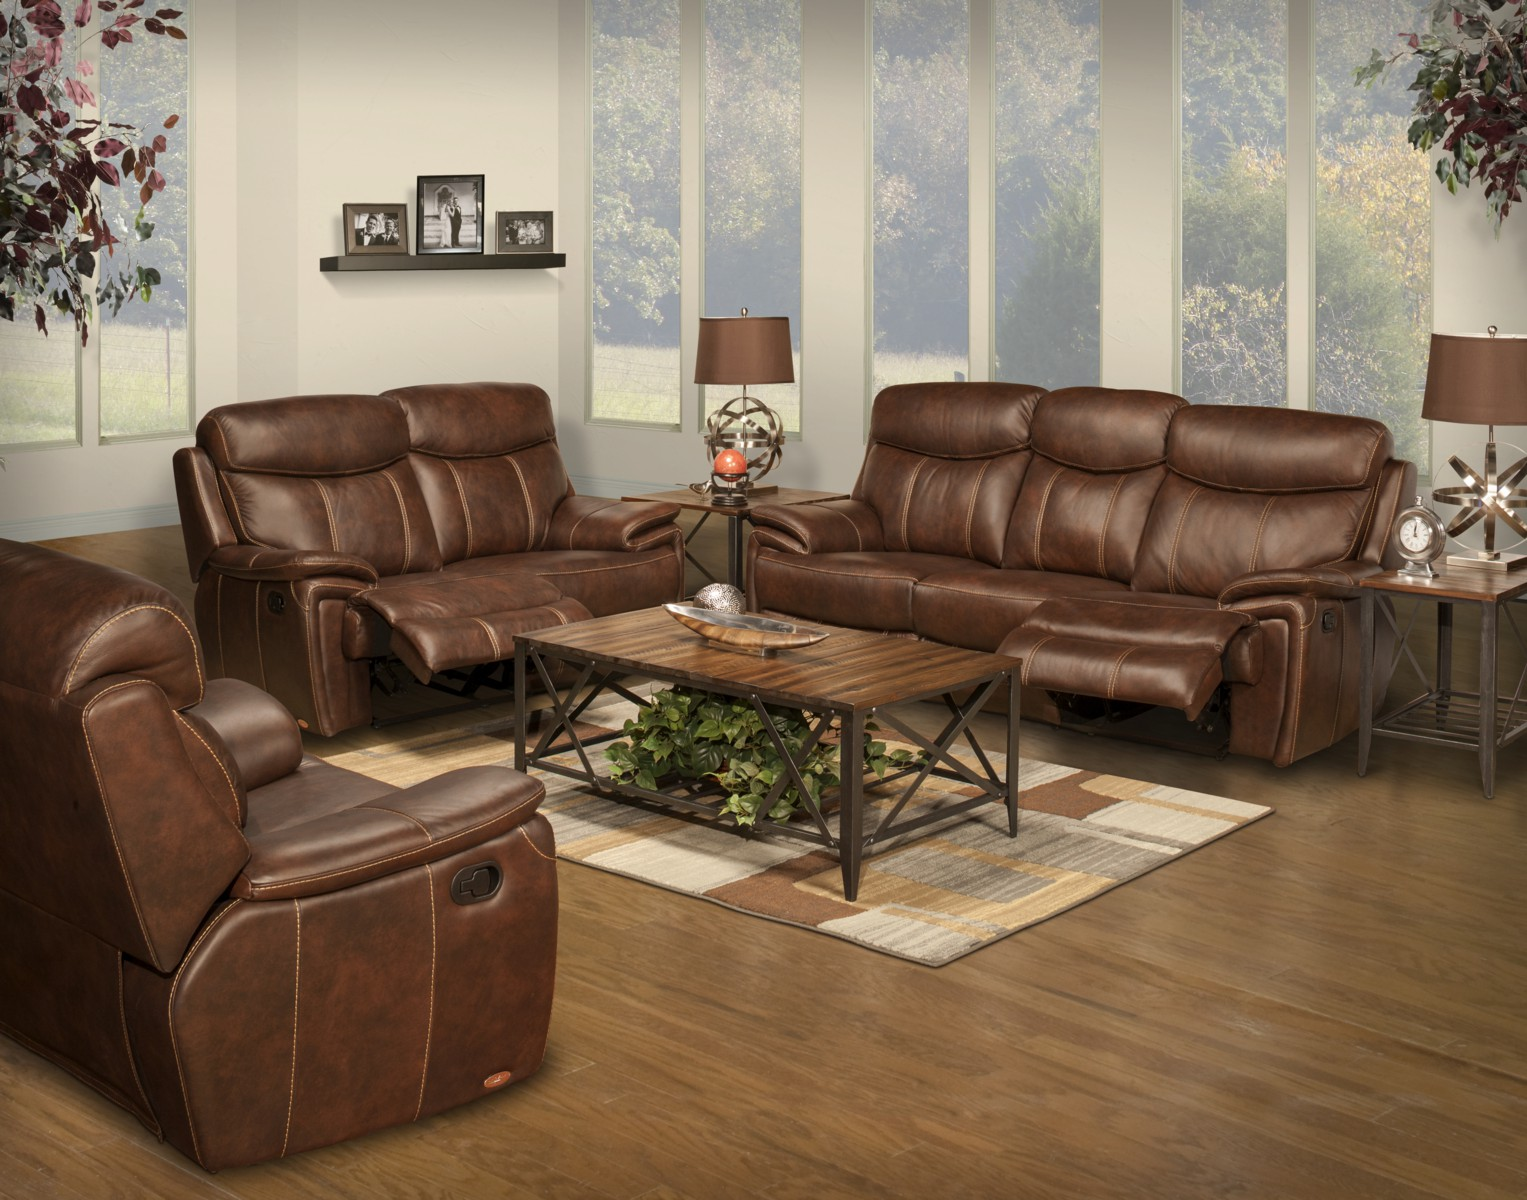 New classic aria 2 piece living room set in matte brown leather living room sets living room 2 piece leather living room set